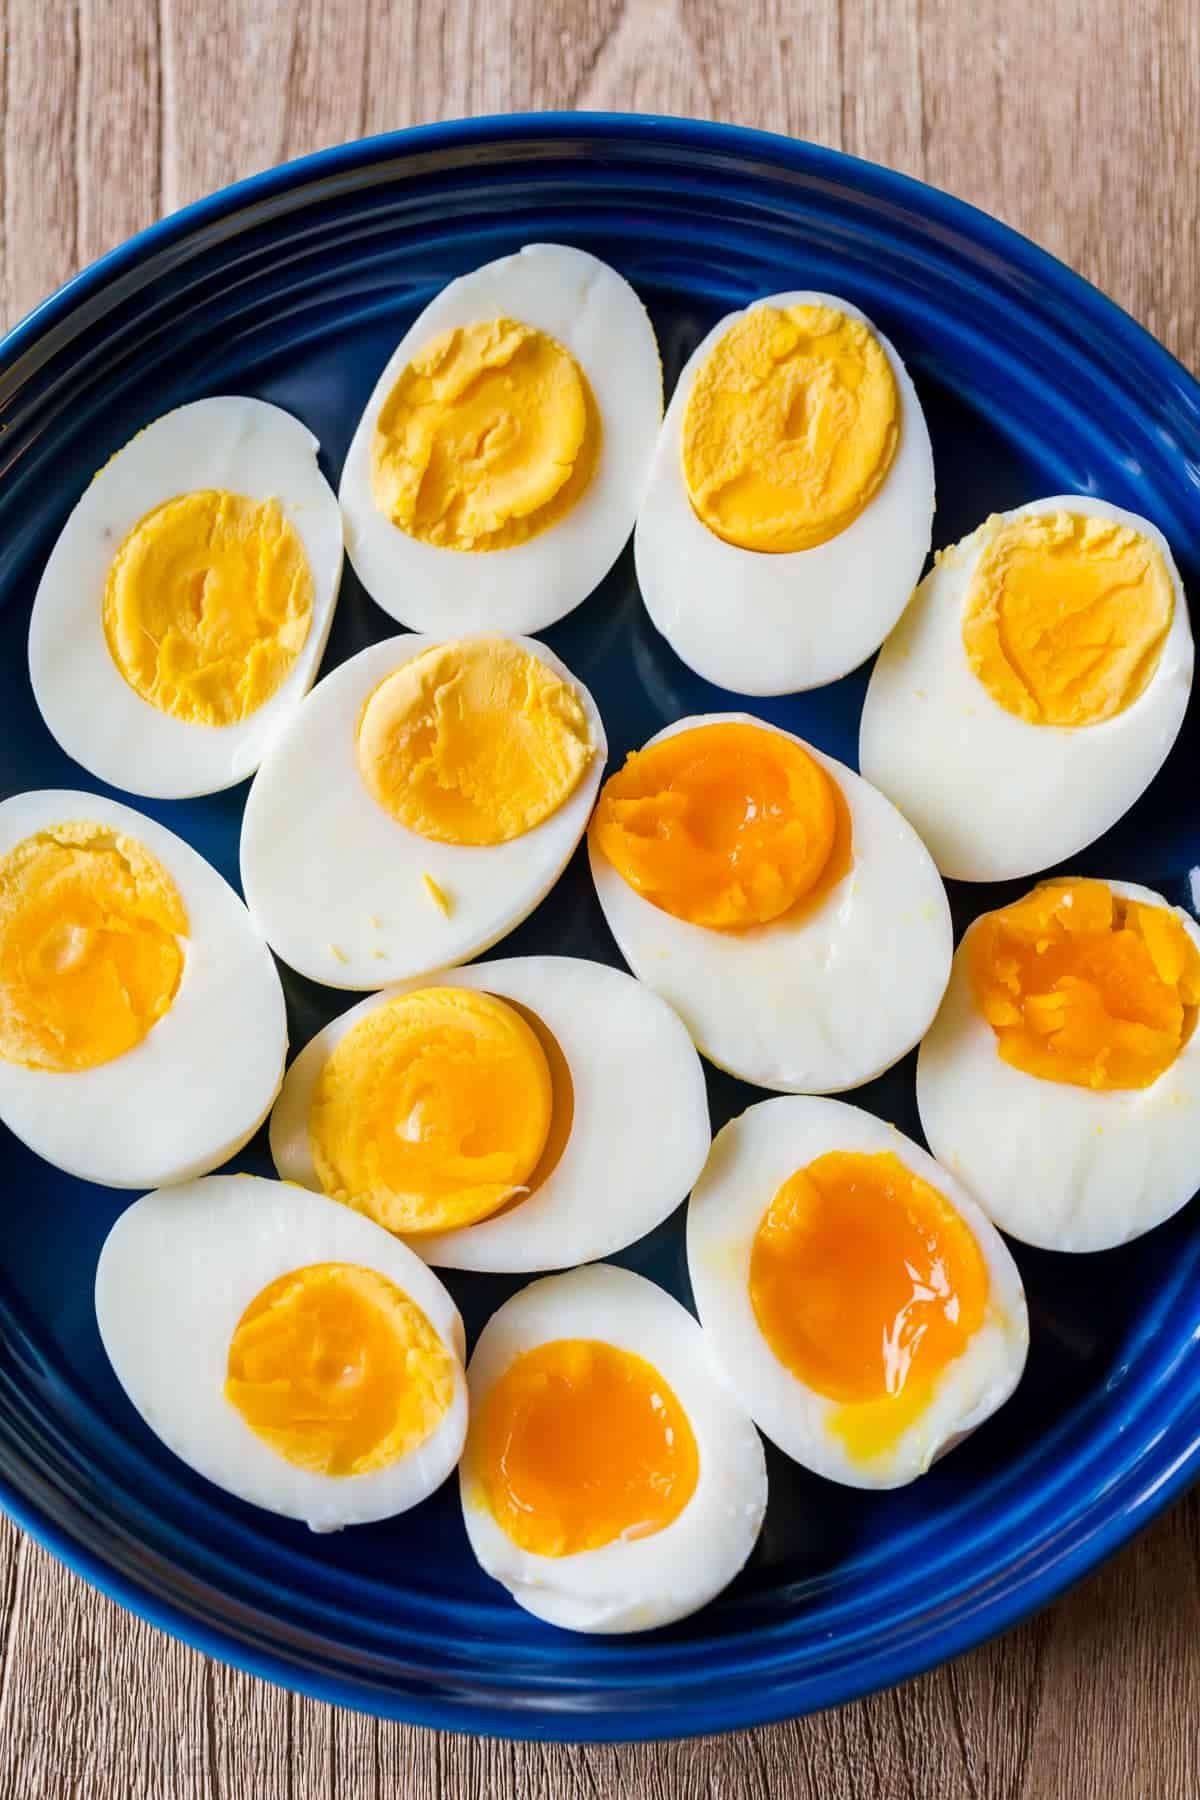 Pin by Stacey O on Eggs  Perfect boiled egg, Thanksgiving side